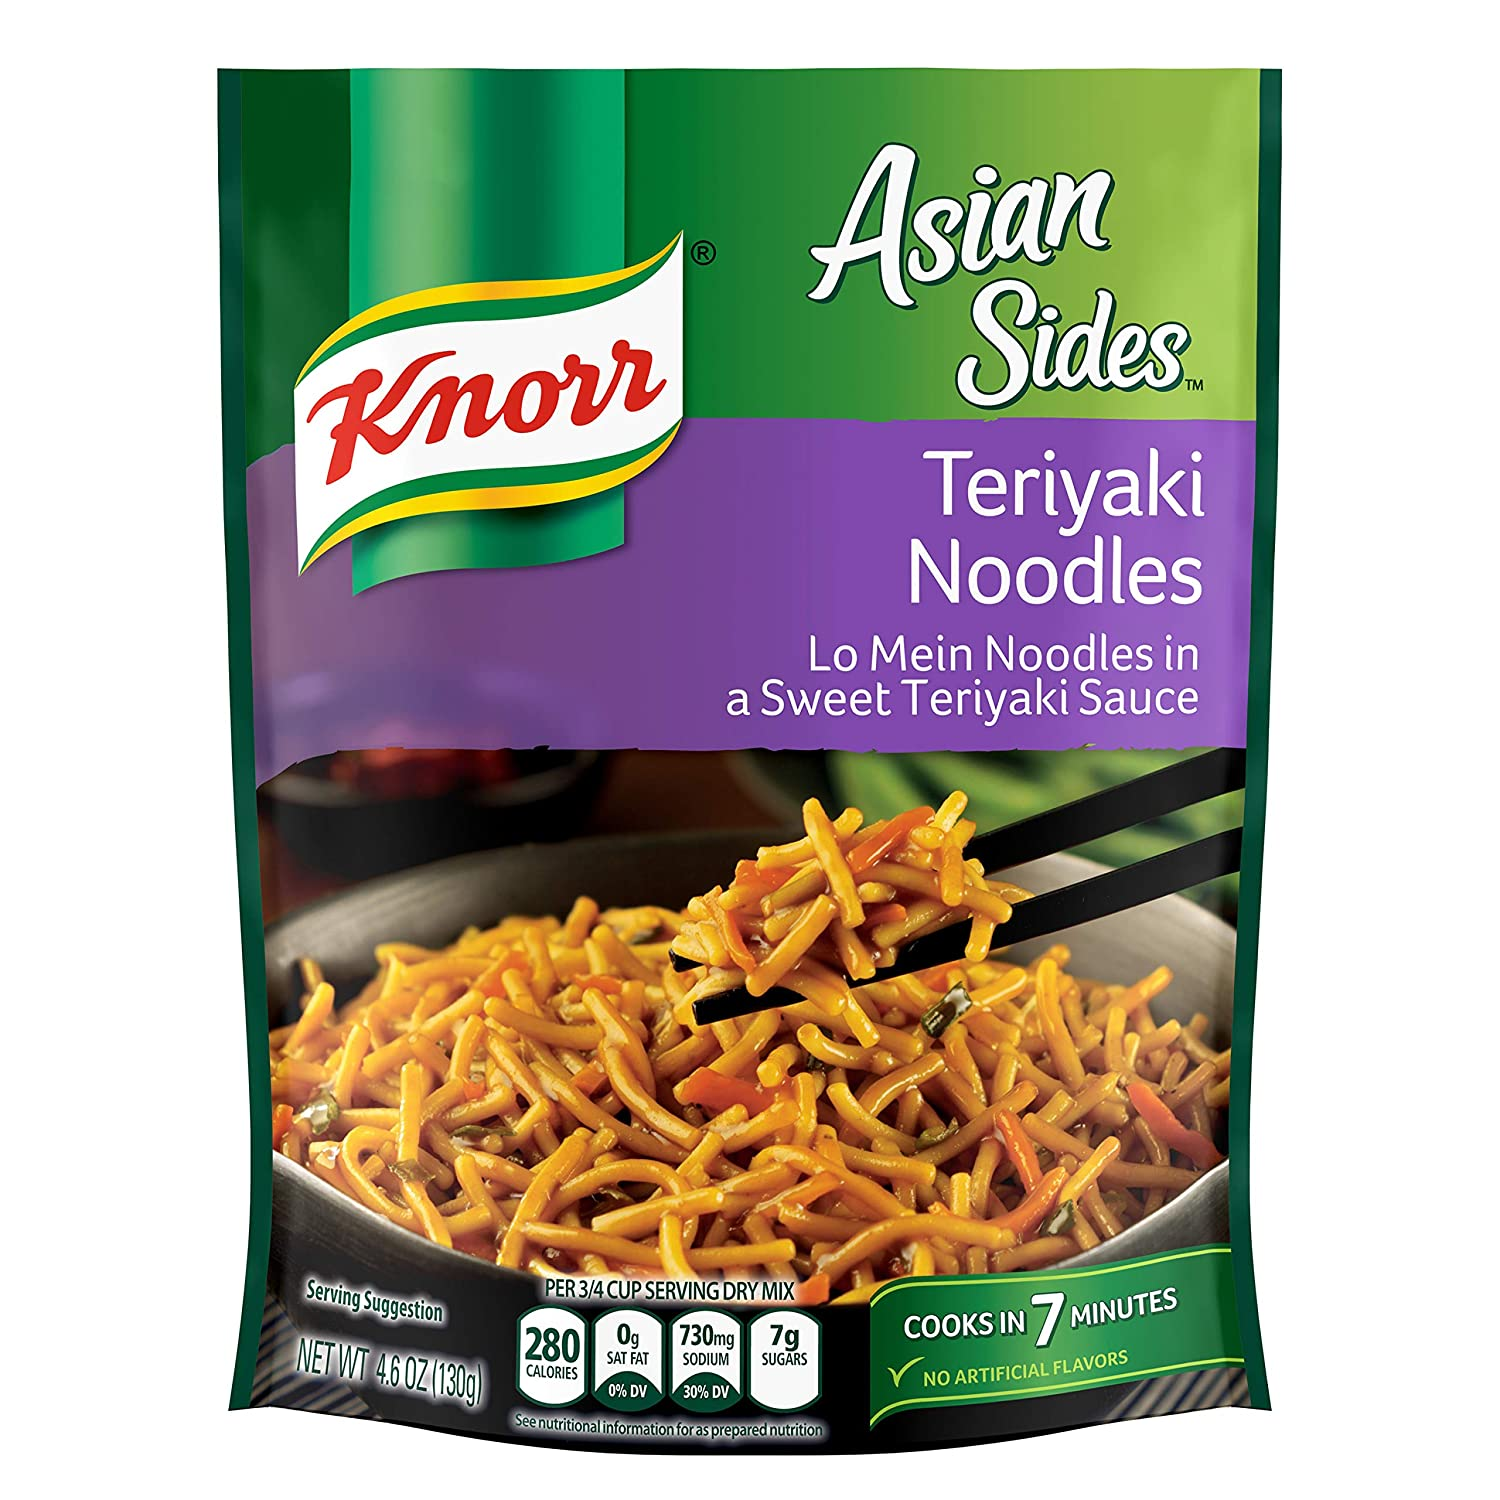 Knorr Asian Pasta Side Dish, Teriyaki Noodles, 4.6 oz